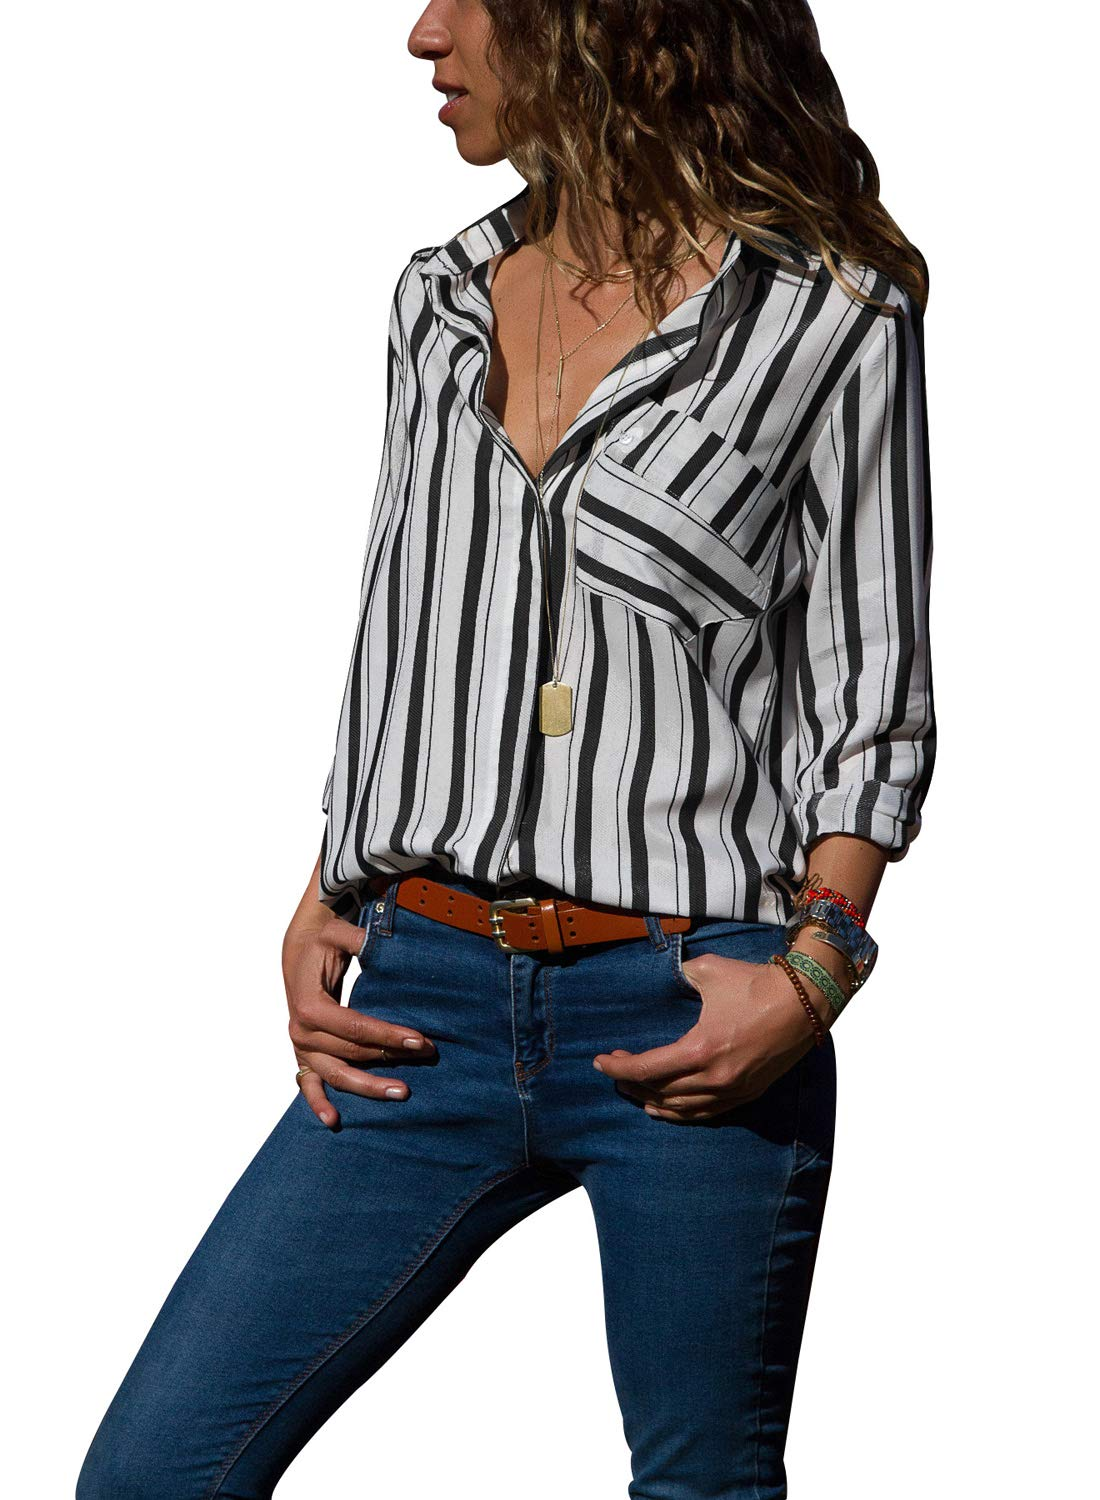 HOTAPEI Womens Casual V Neck Striped Chiffon Tops and Blouses 3 4 Long Sleeve Business Button Down Shirts Black and White Medium